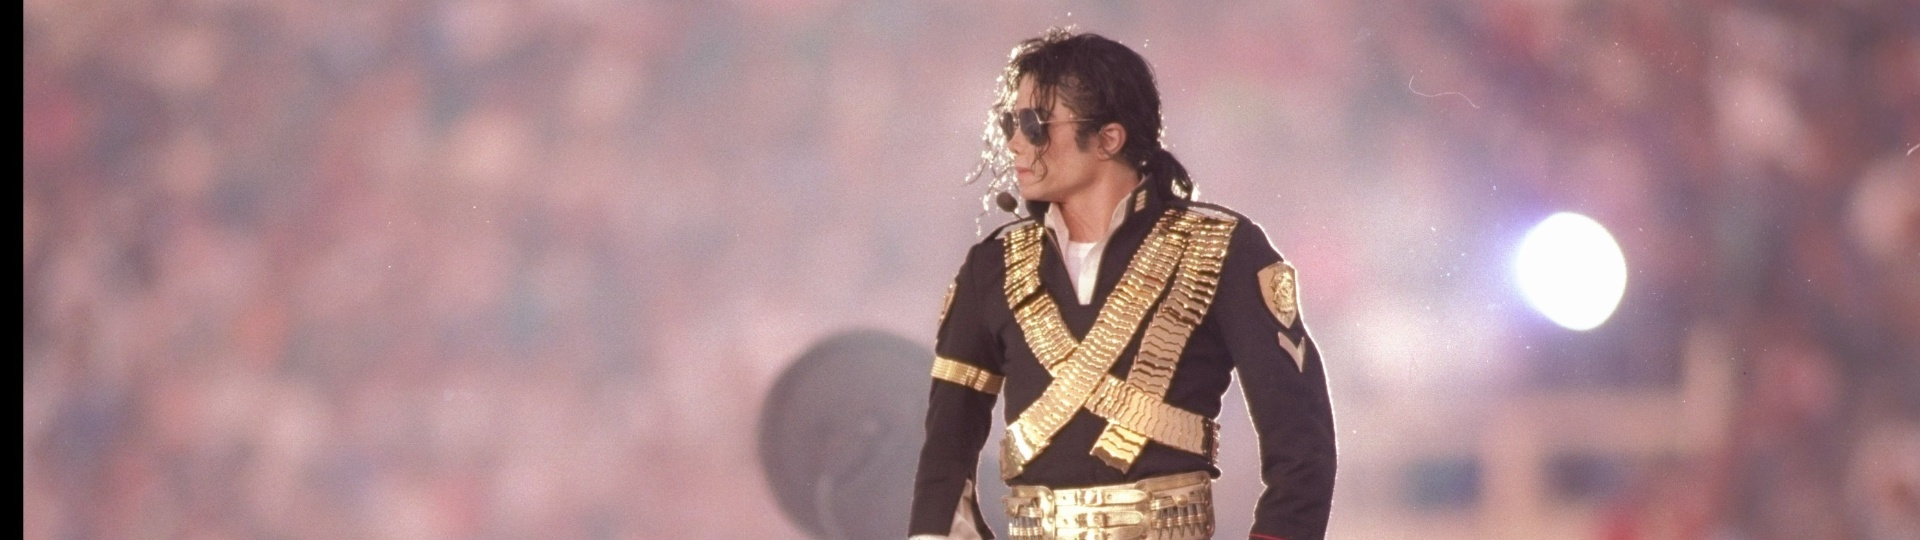 Michael Jackson se apresenta no intervalo do Super Bowl XXVII em 1993